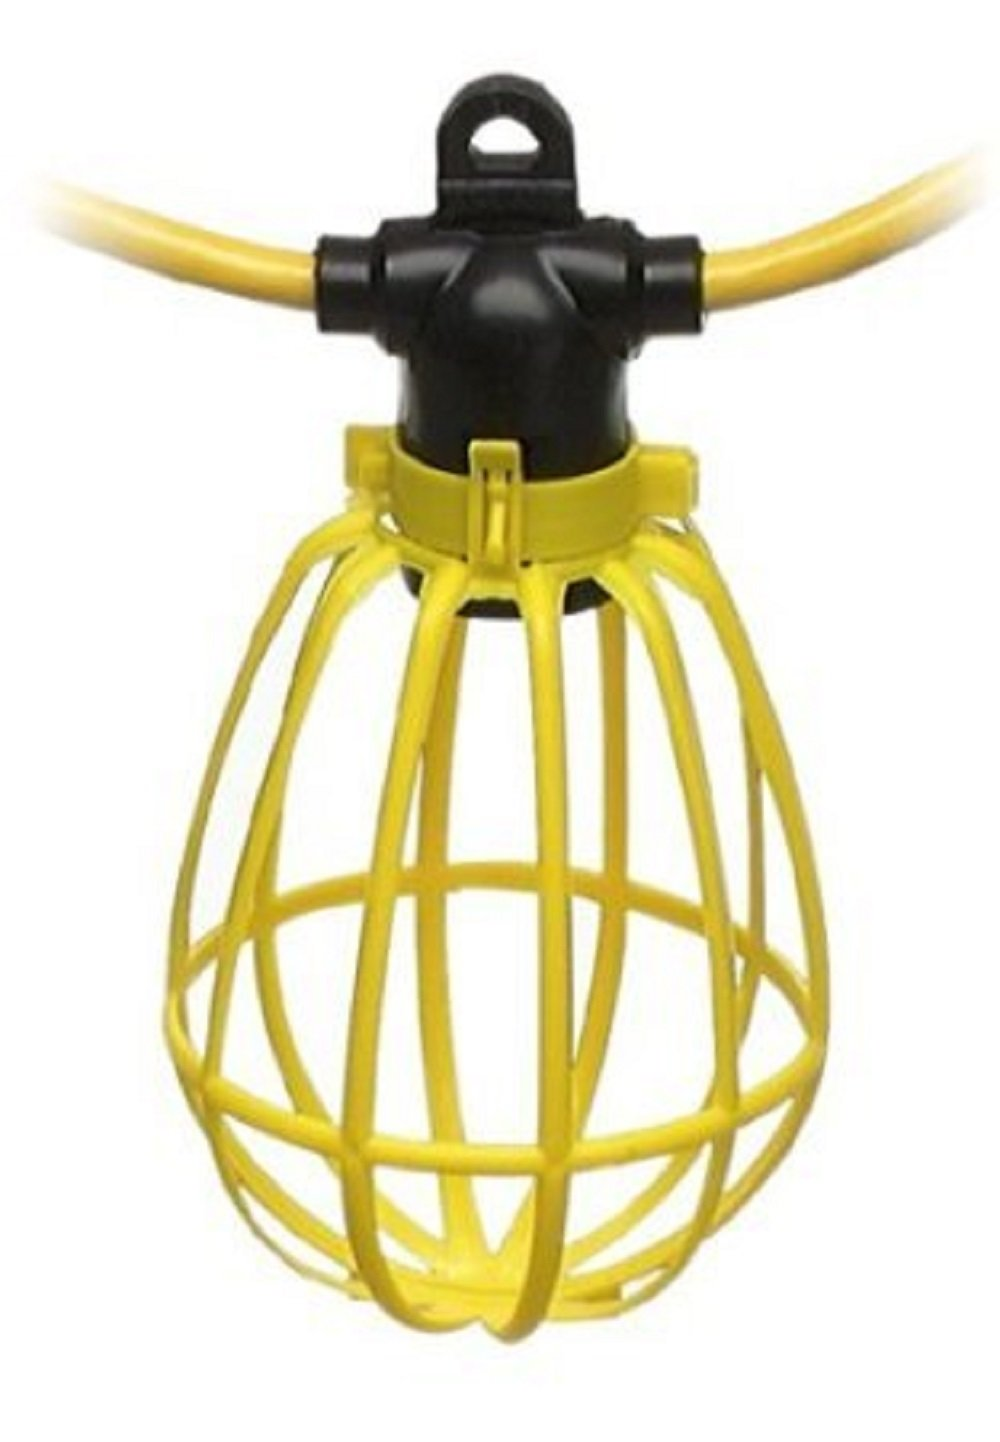 100 Foot Outdoor Yellow Commercial Contractor-Grade Plastic Cage String Lights 100FT 10 Sockets by Sterl Lighting